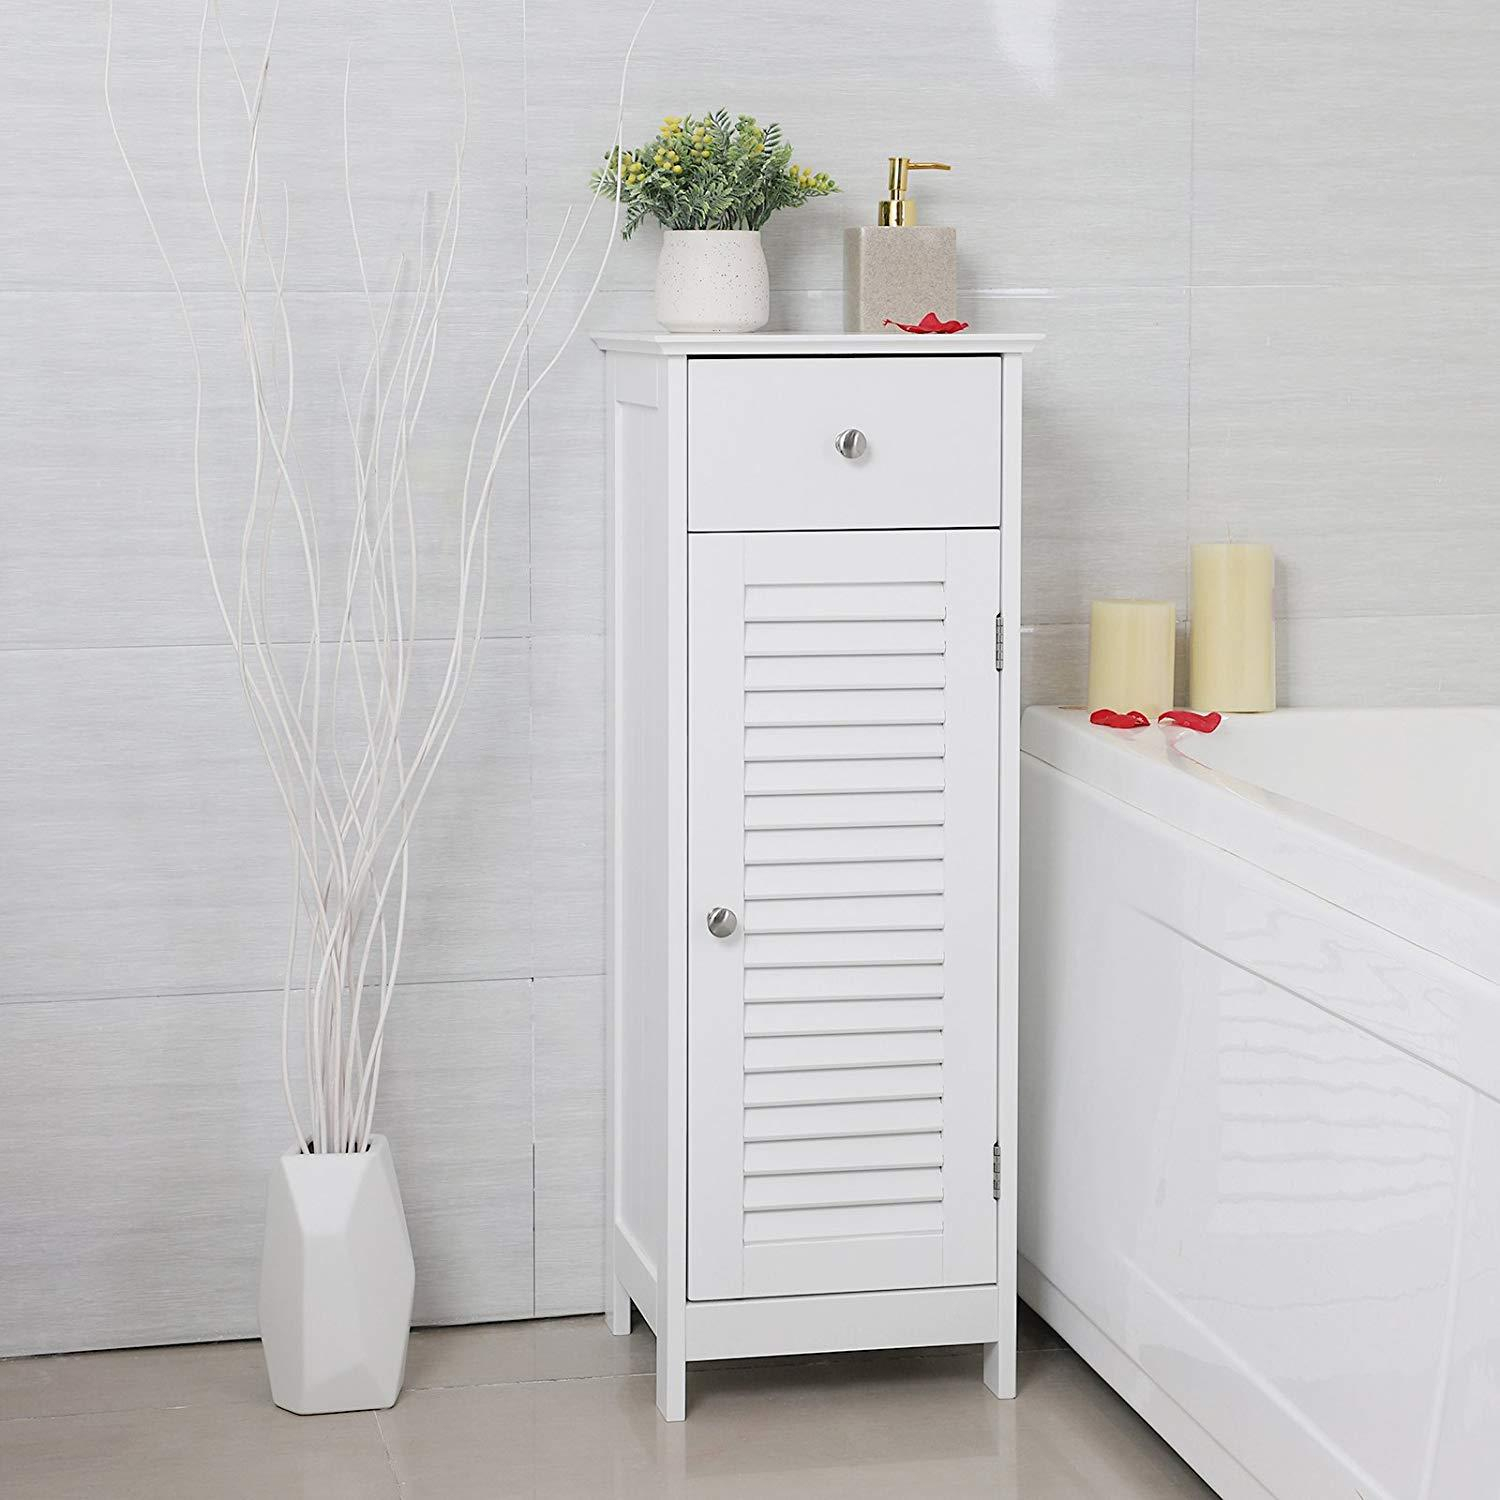 Ktaxon Bathroom Storage Floor Cabinet Bathroom Cabinet Free Standing With Single Drawer And Shelfwhite with proportions 1500 X 1500